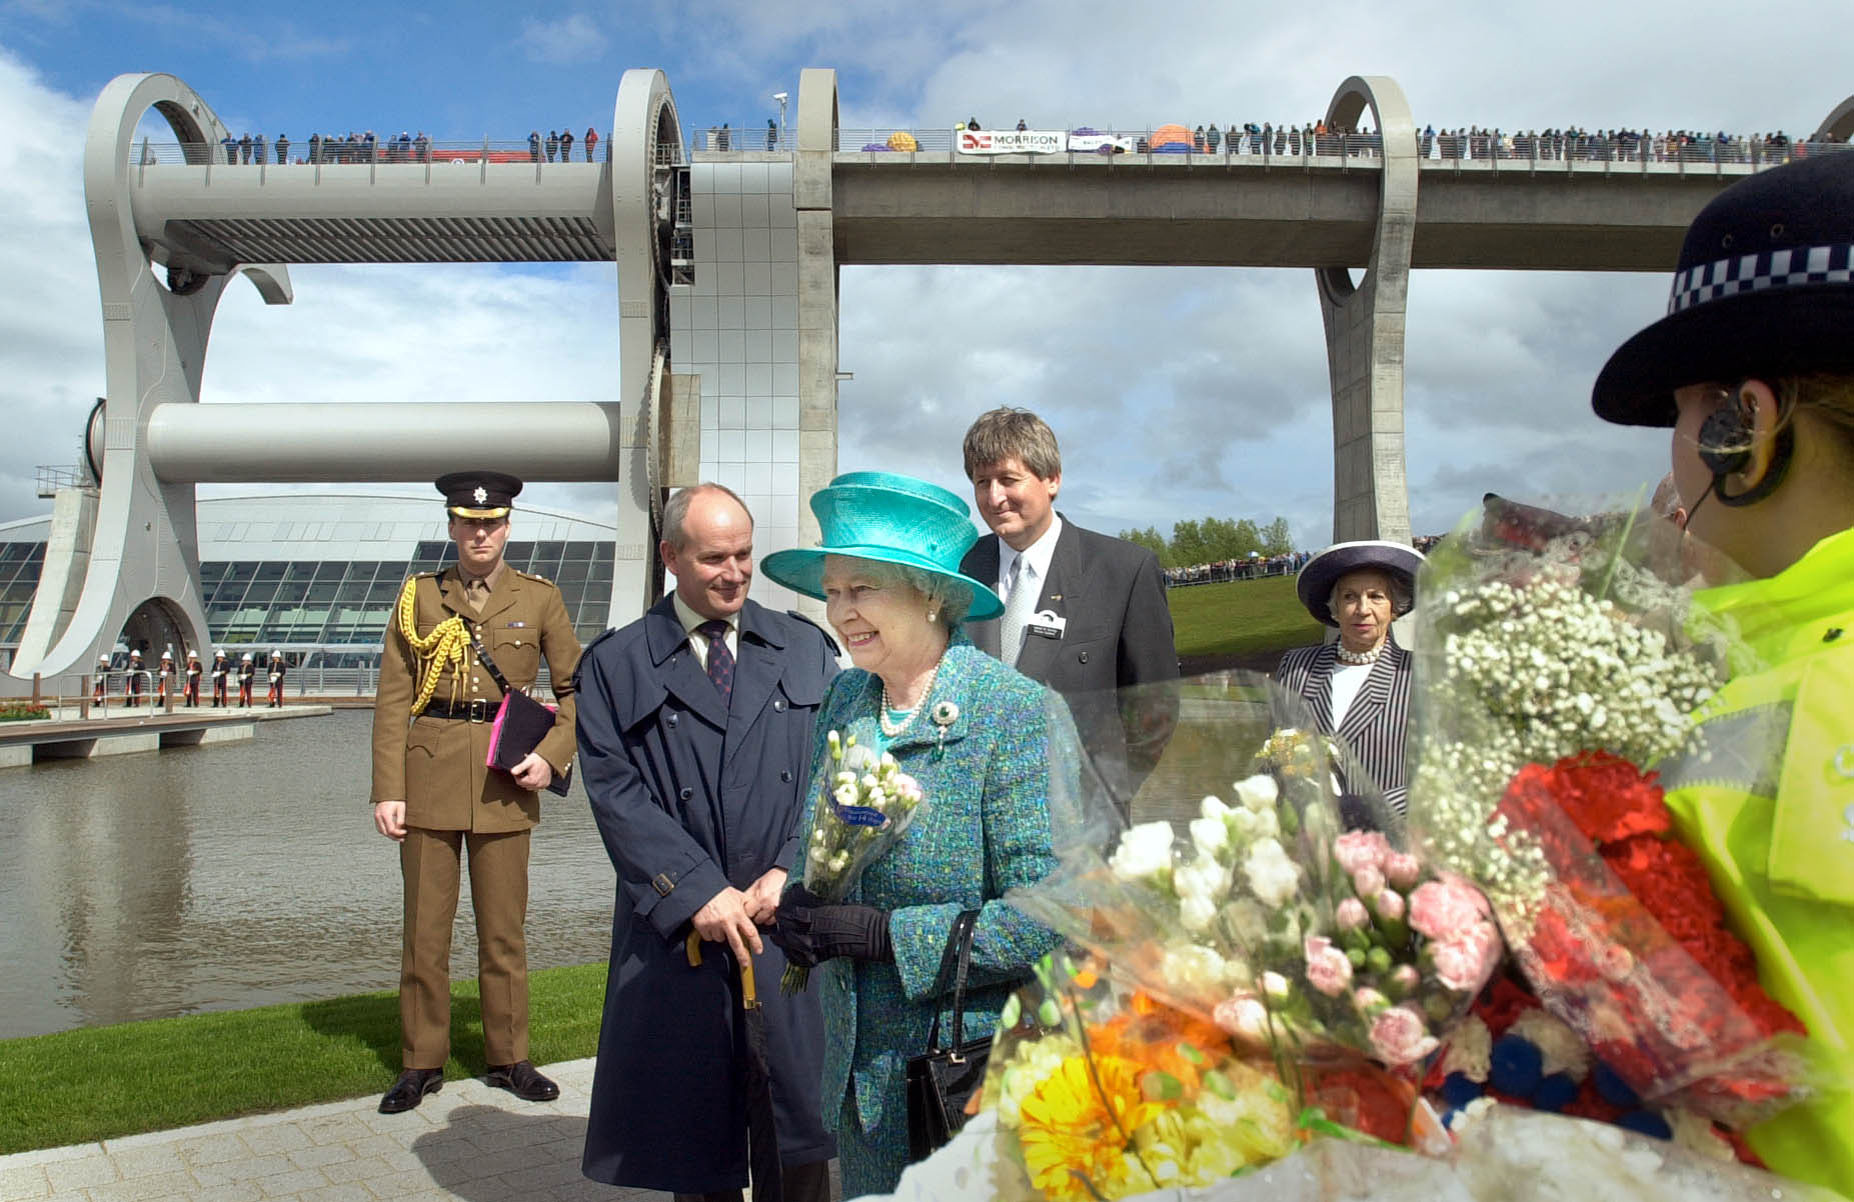 The Queen tours and officially opens the site of the Falkirk Wheel (Ben Curtis WPA/Rota)